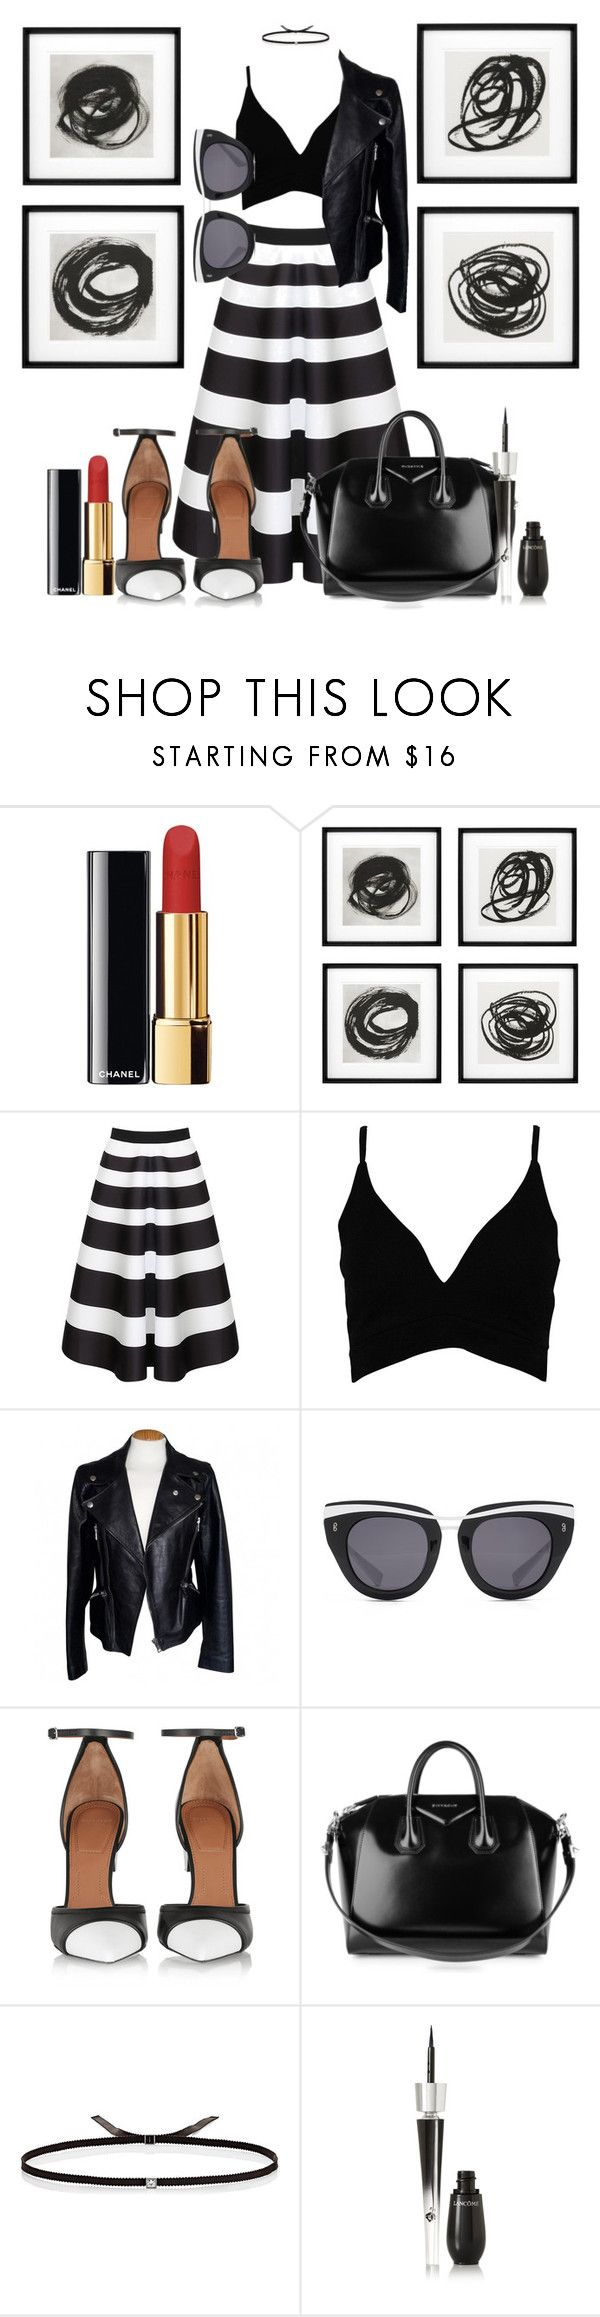 """""""100. Black & White"""" by giusysal ❤ liked on Polyvore featuring Chanel, Eichholtz, WithChic, Boohoo, Alexander McQueen, HOOK LDN, Givenchy, Ileana Makri and Lancôme"""